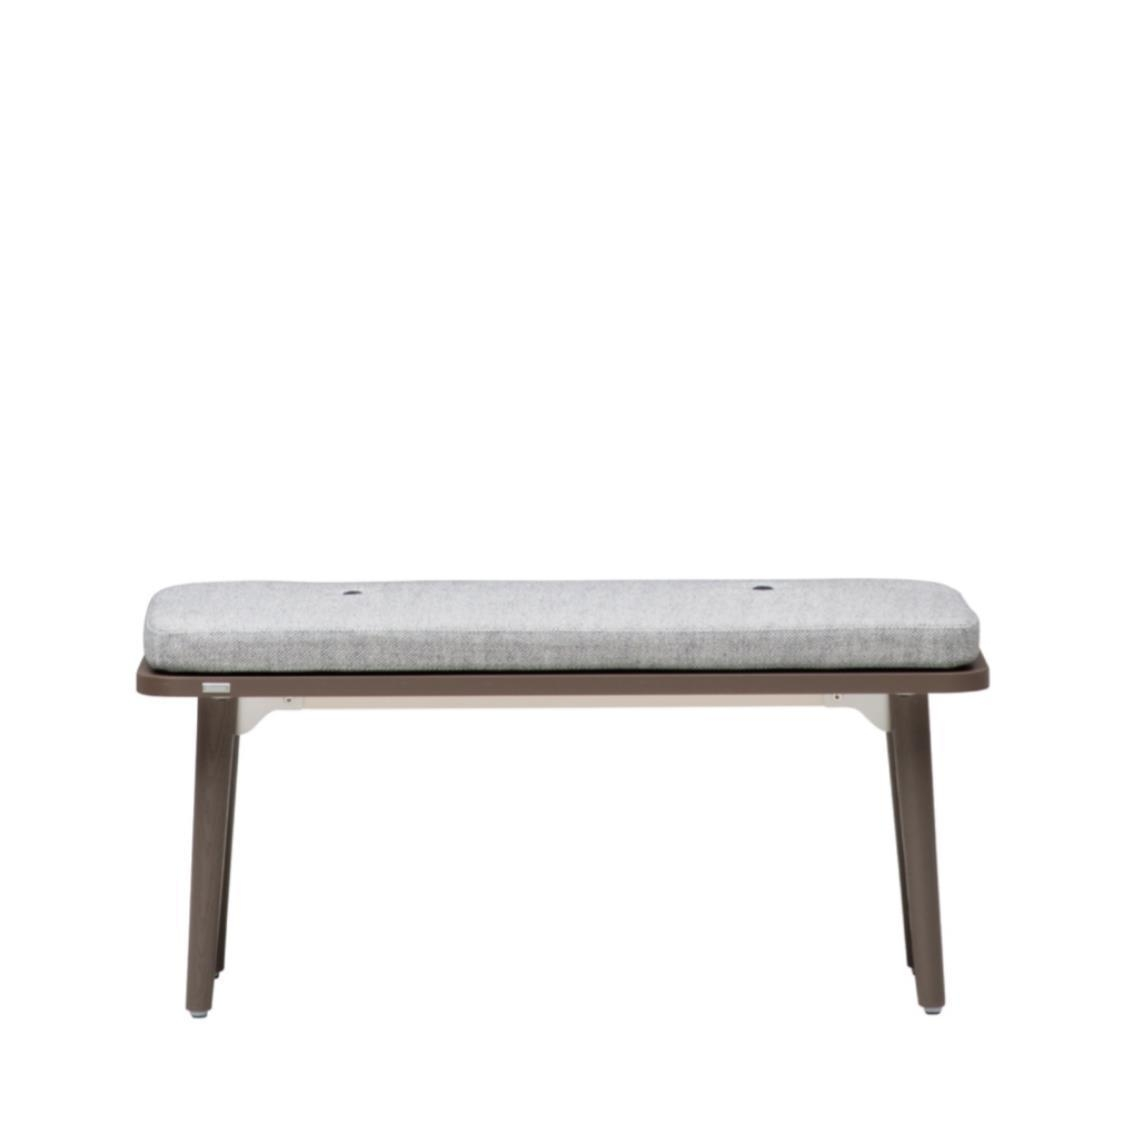 Iloom Libre Bench for 2 2 Cushion